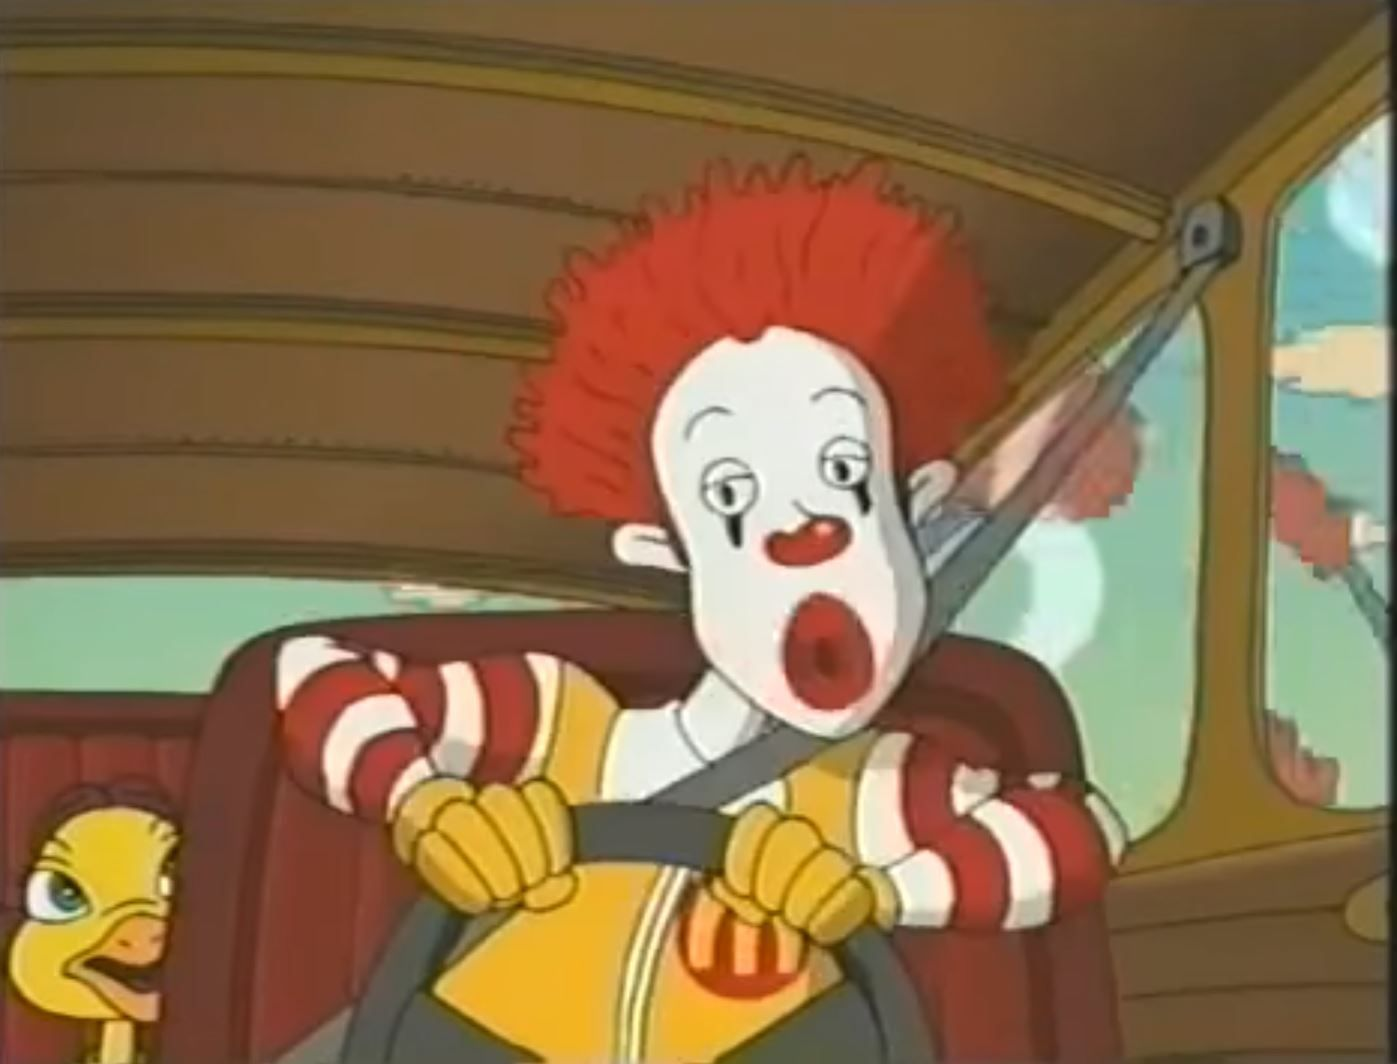 McDonalds Scared Silly Ronald